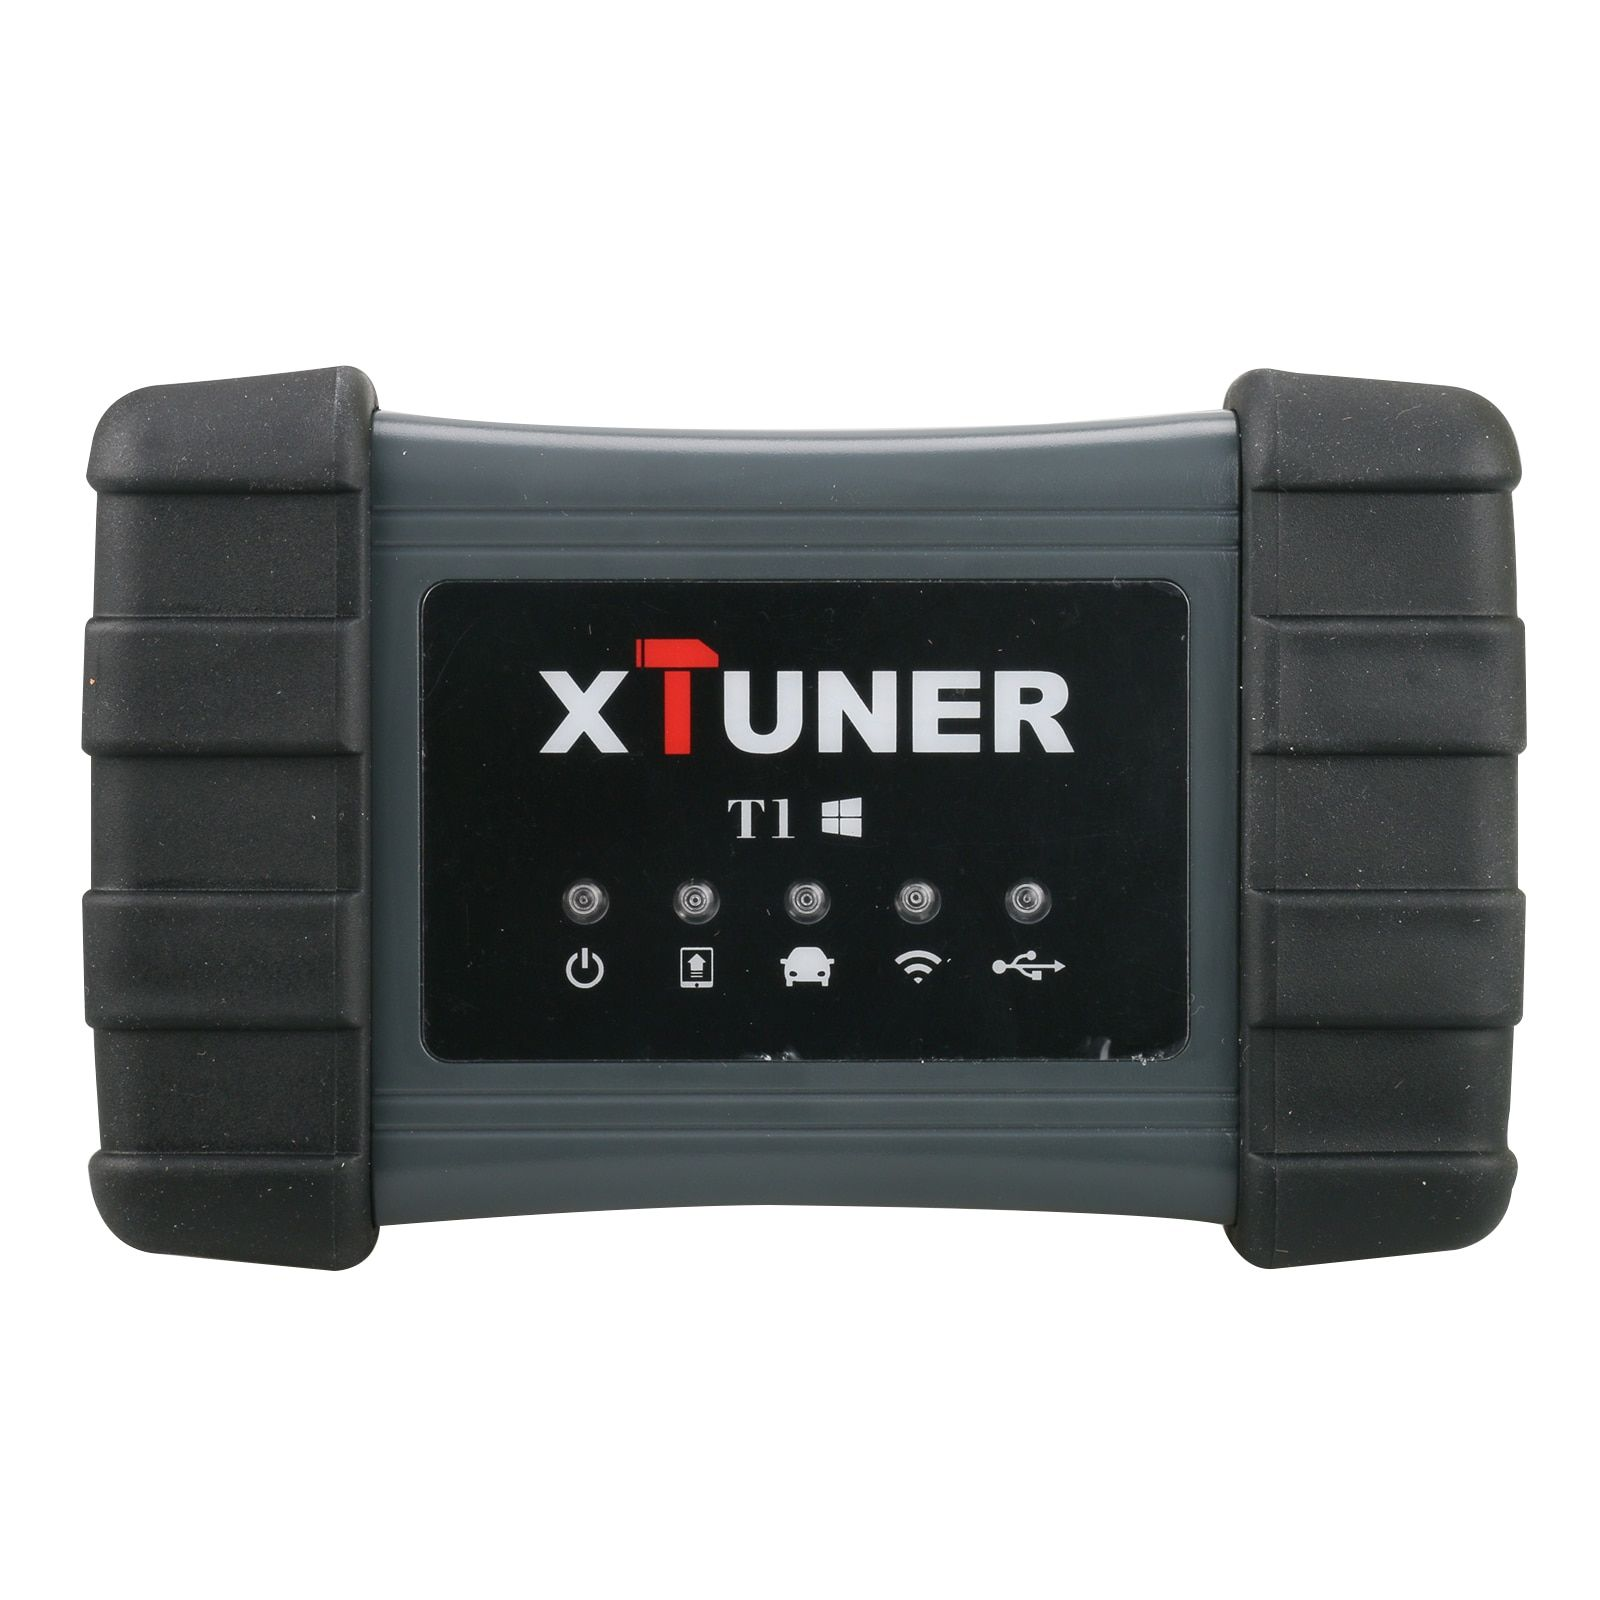 New Arrival Free Shipping XTUNER T1 Heavy Duty Trucks Auto Intelligent Diagnostic Tool Support WIFI Xtuner T1 HD Free Shipping